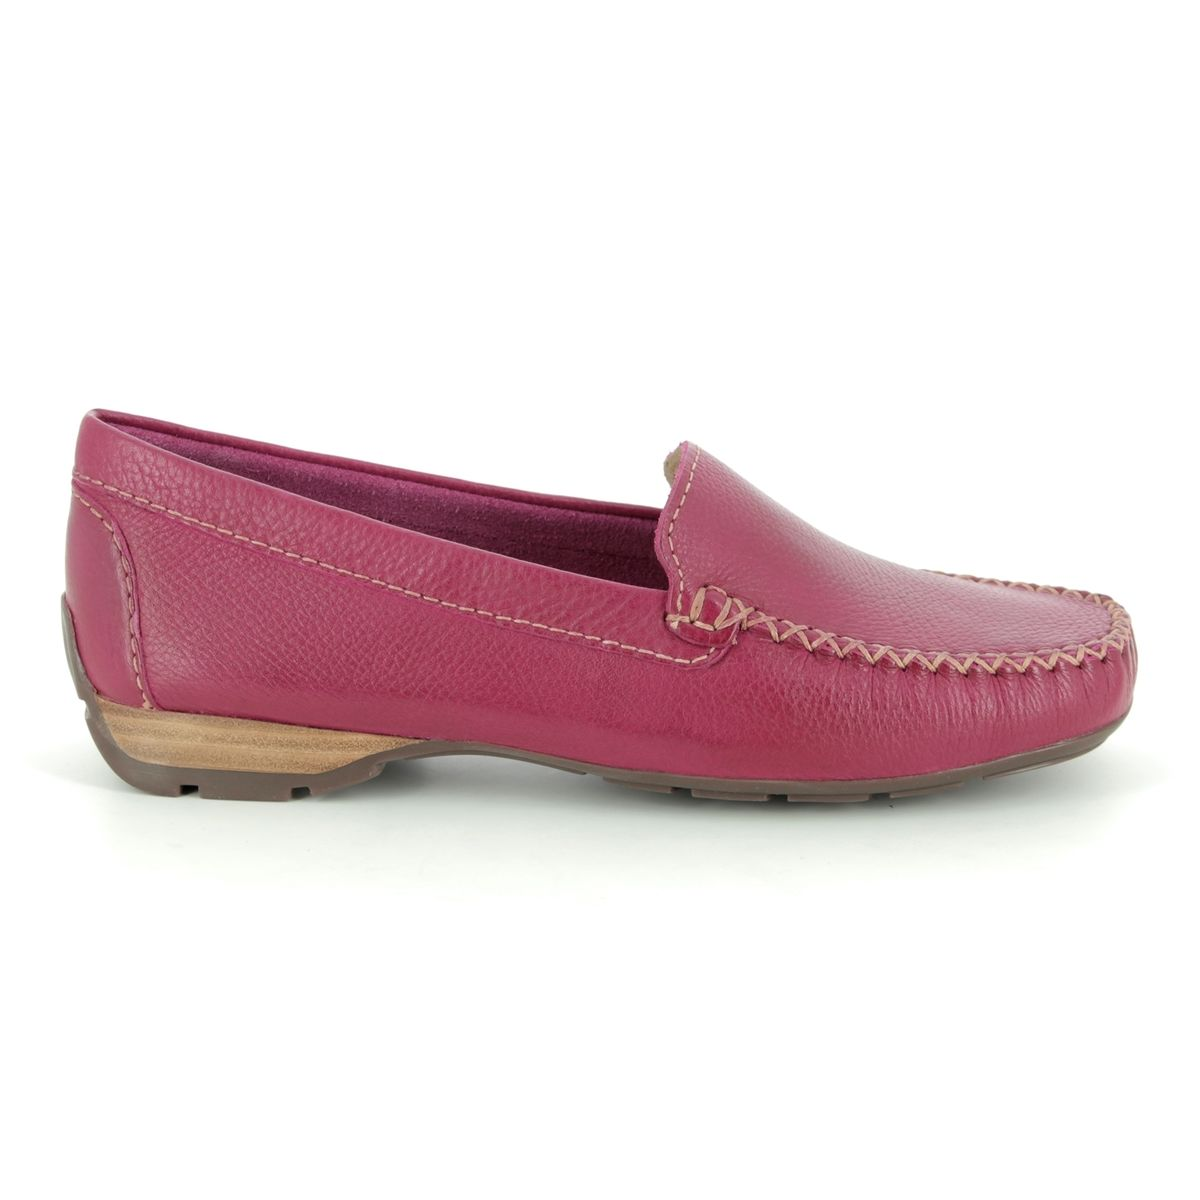 Begg Shoes Sunday Wide Fit 40539-62